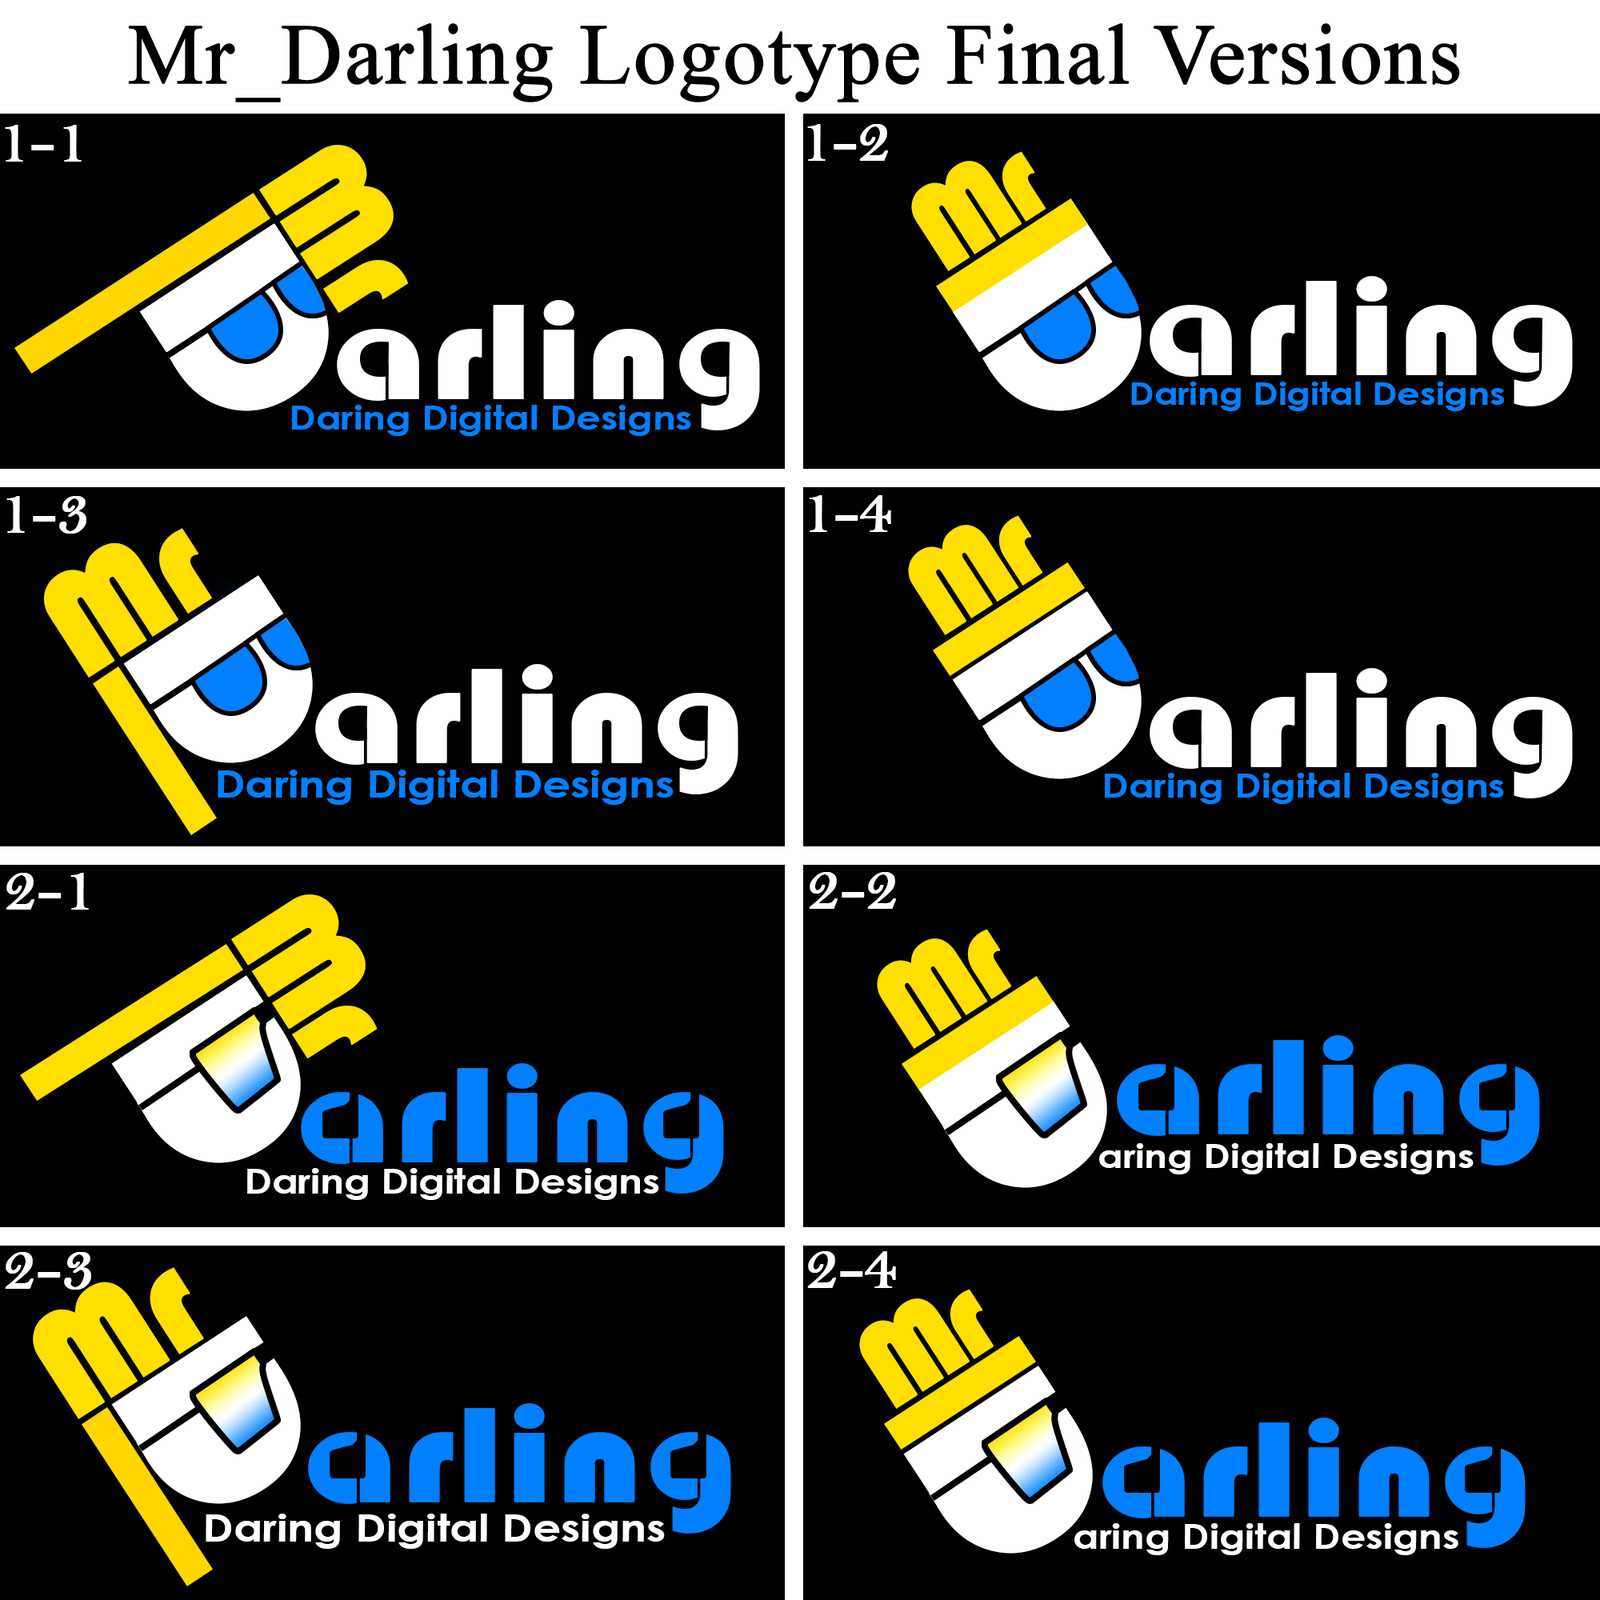 Fourth Round of Mr_Darling Logotype Concepts